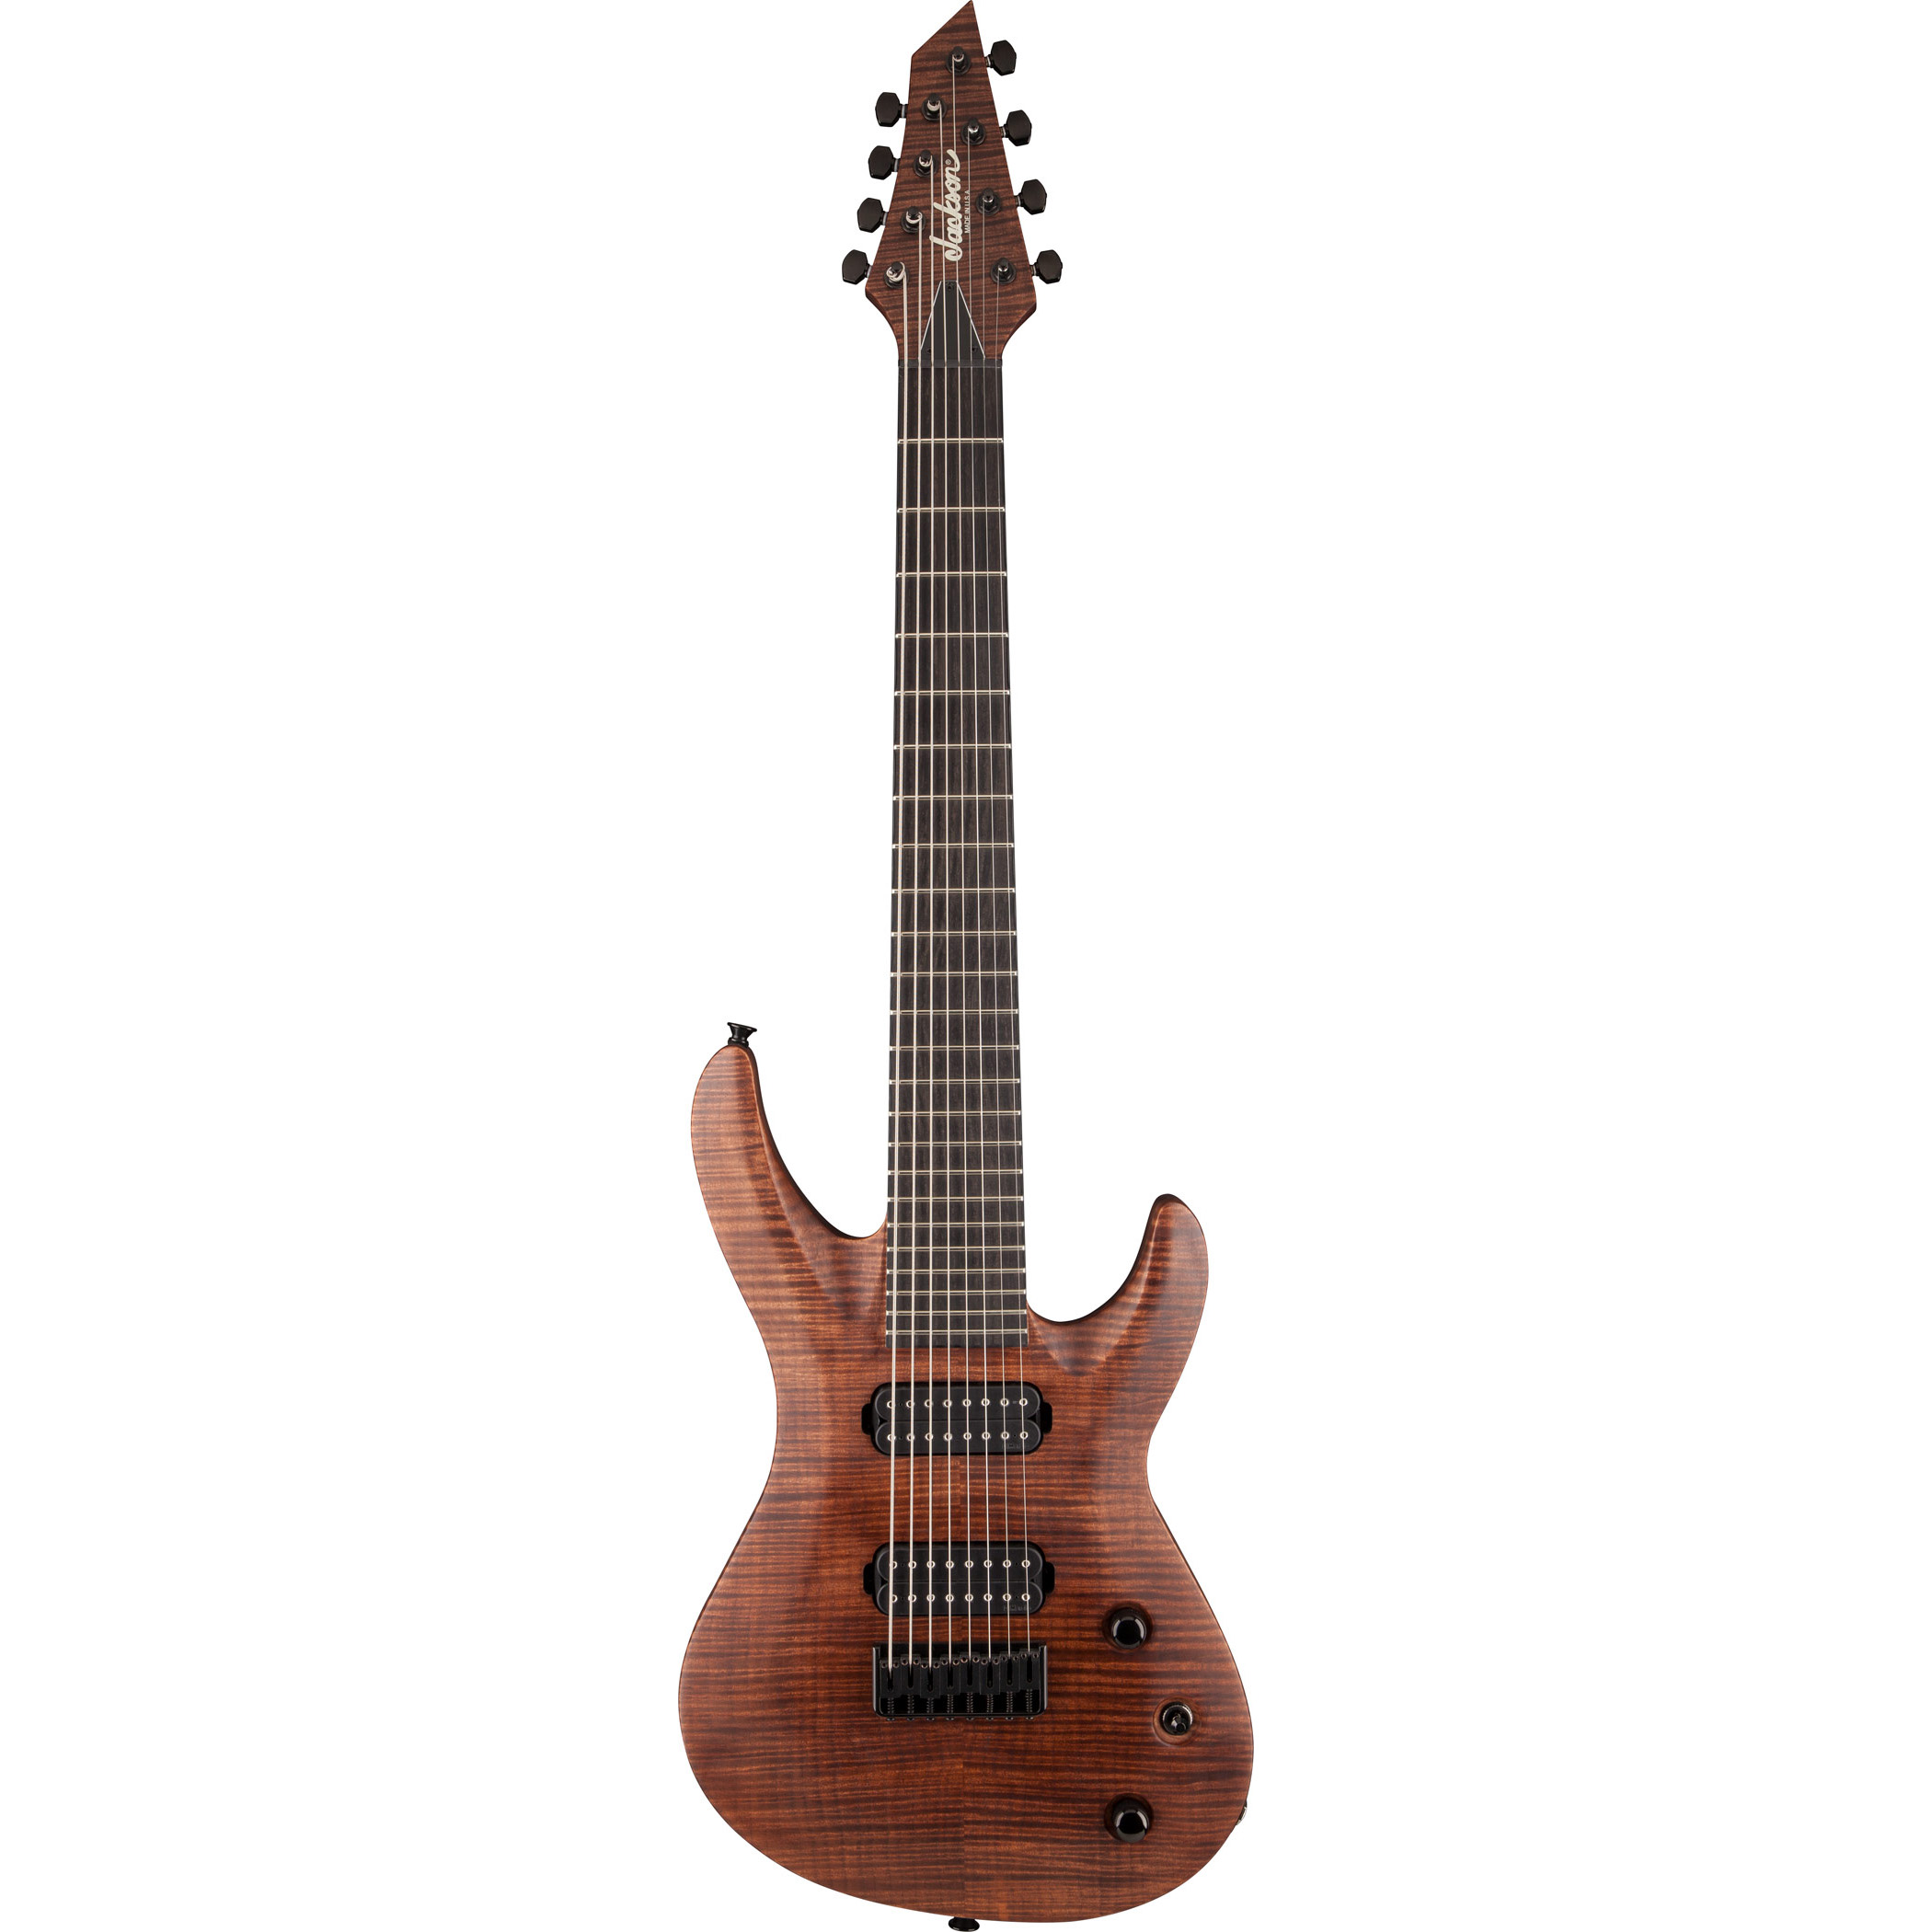 Jackson USA Select B8 WALNUT STAIN Электрогитары